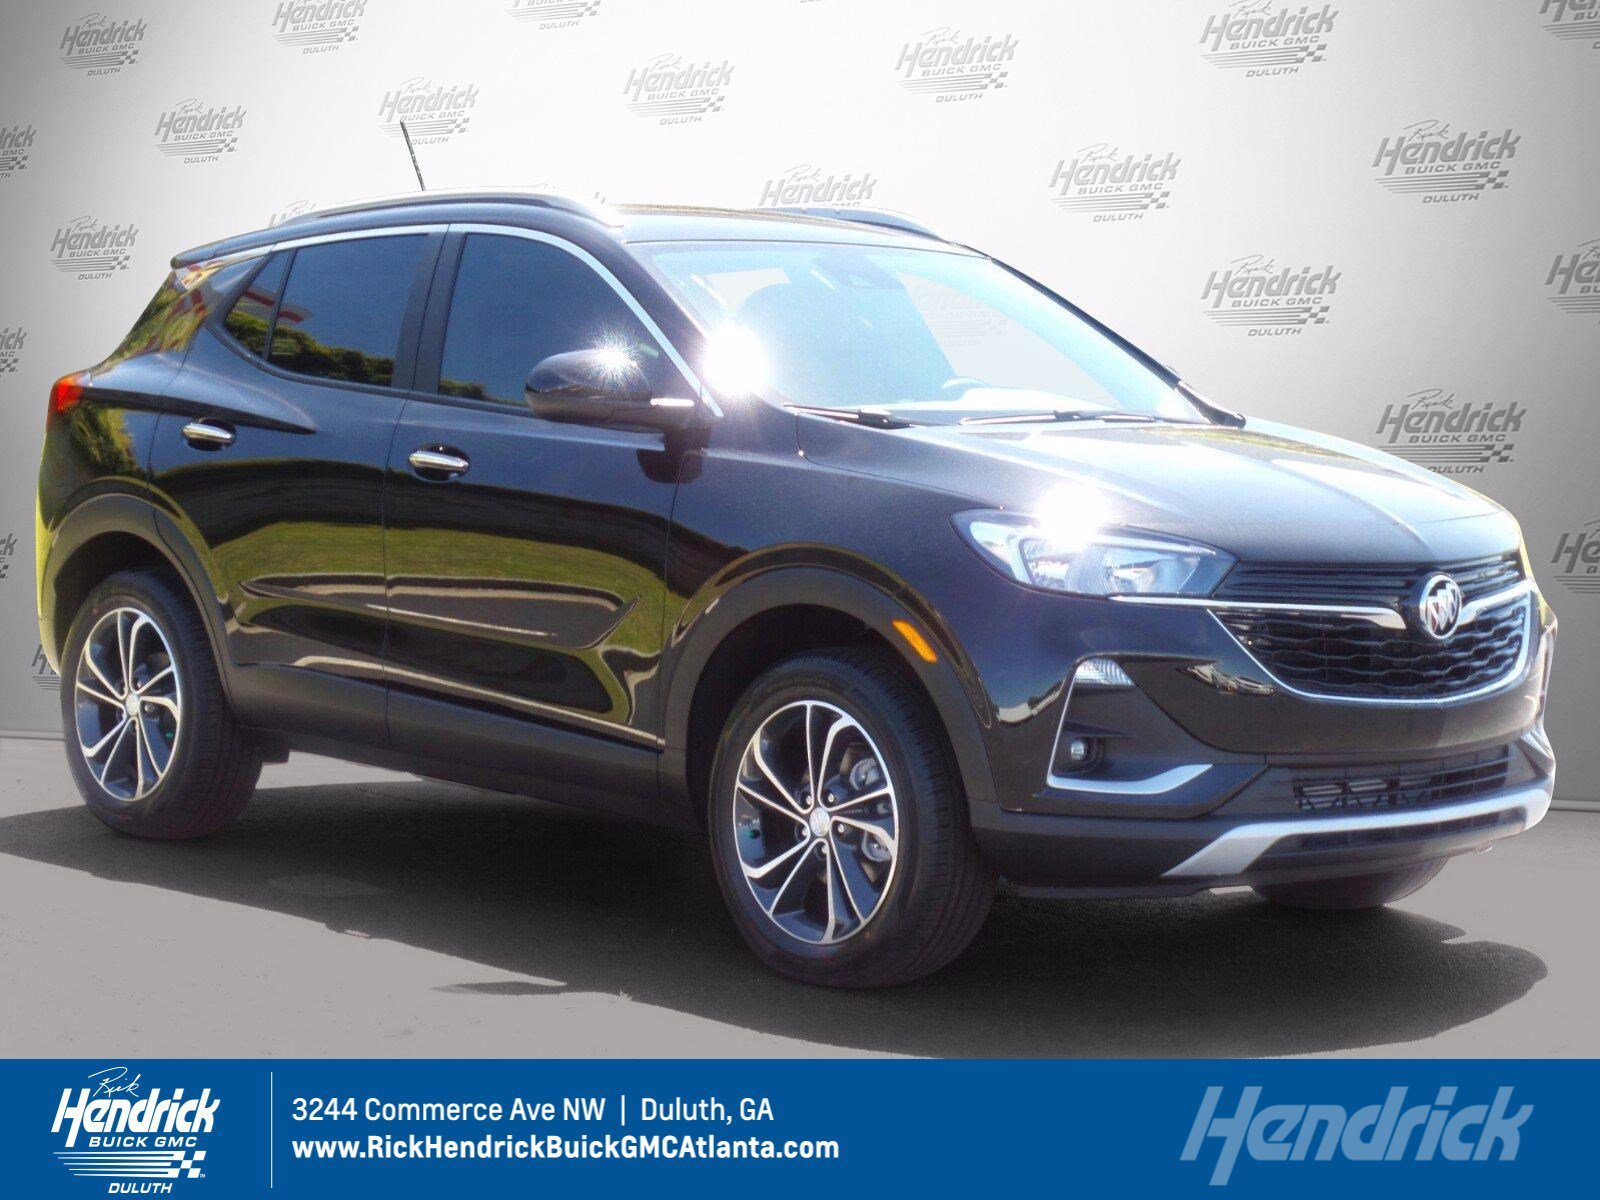 New 2020 Buick Encore Gx Select Awd New 2021 Buick Encore Accessories, All Wheel Drive, Build